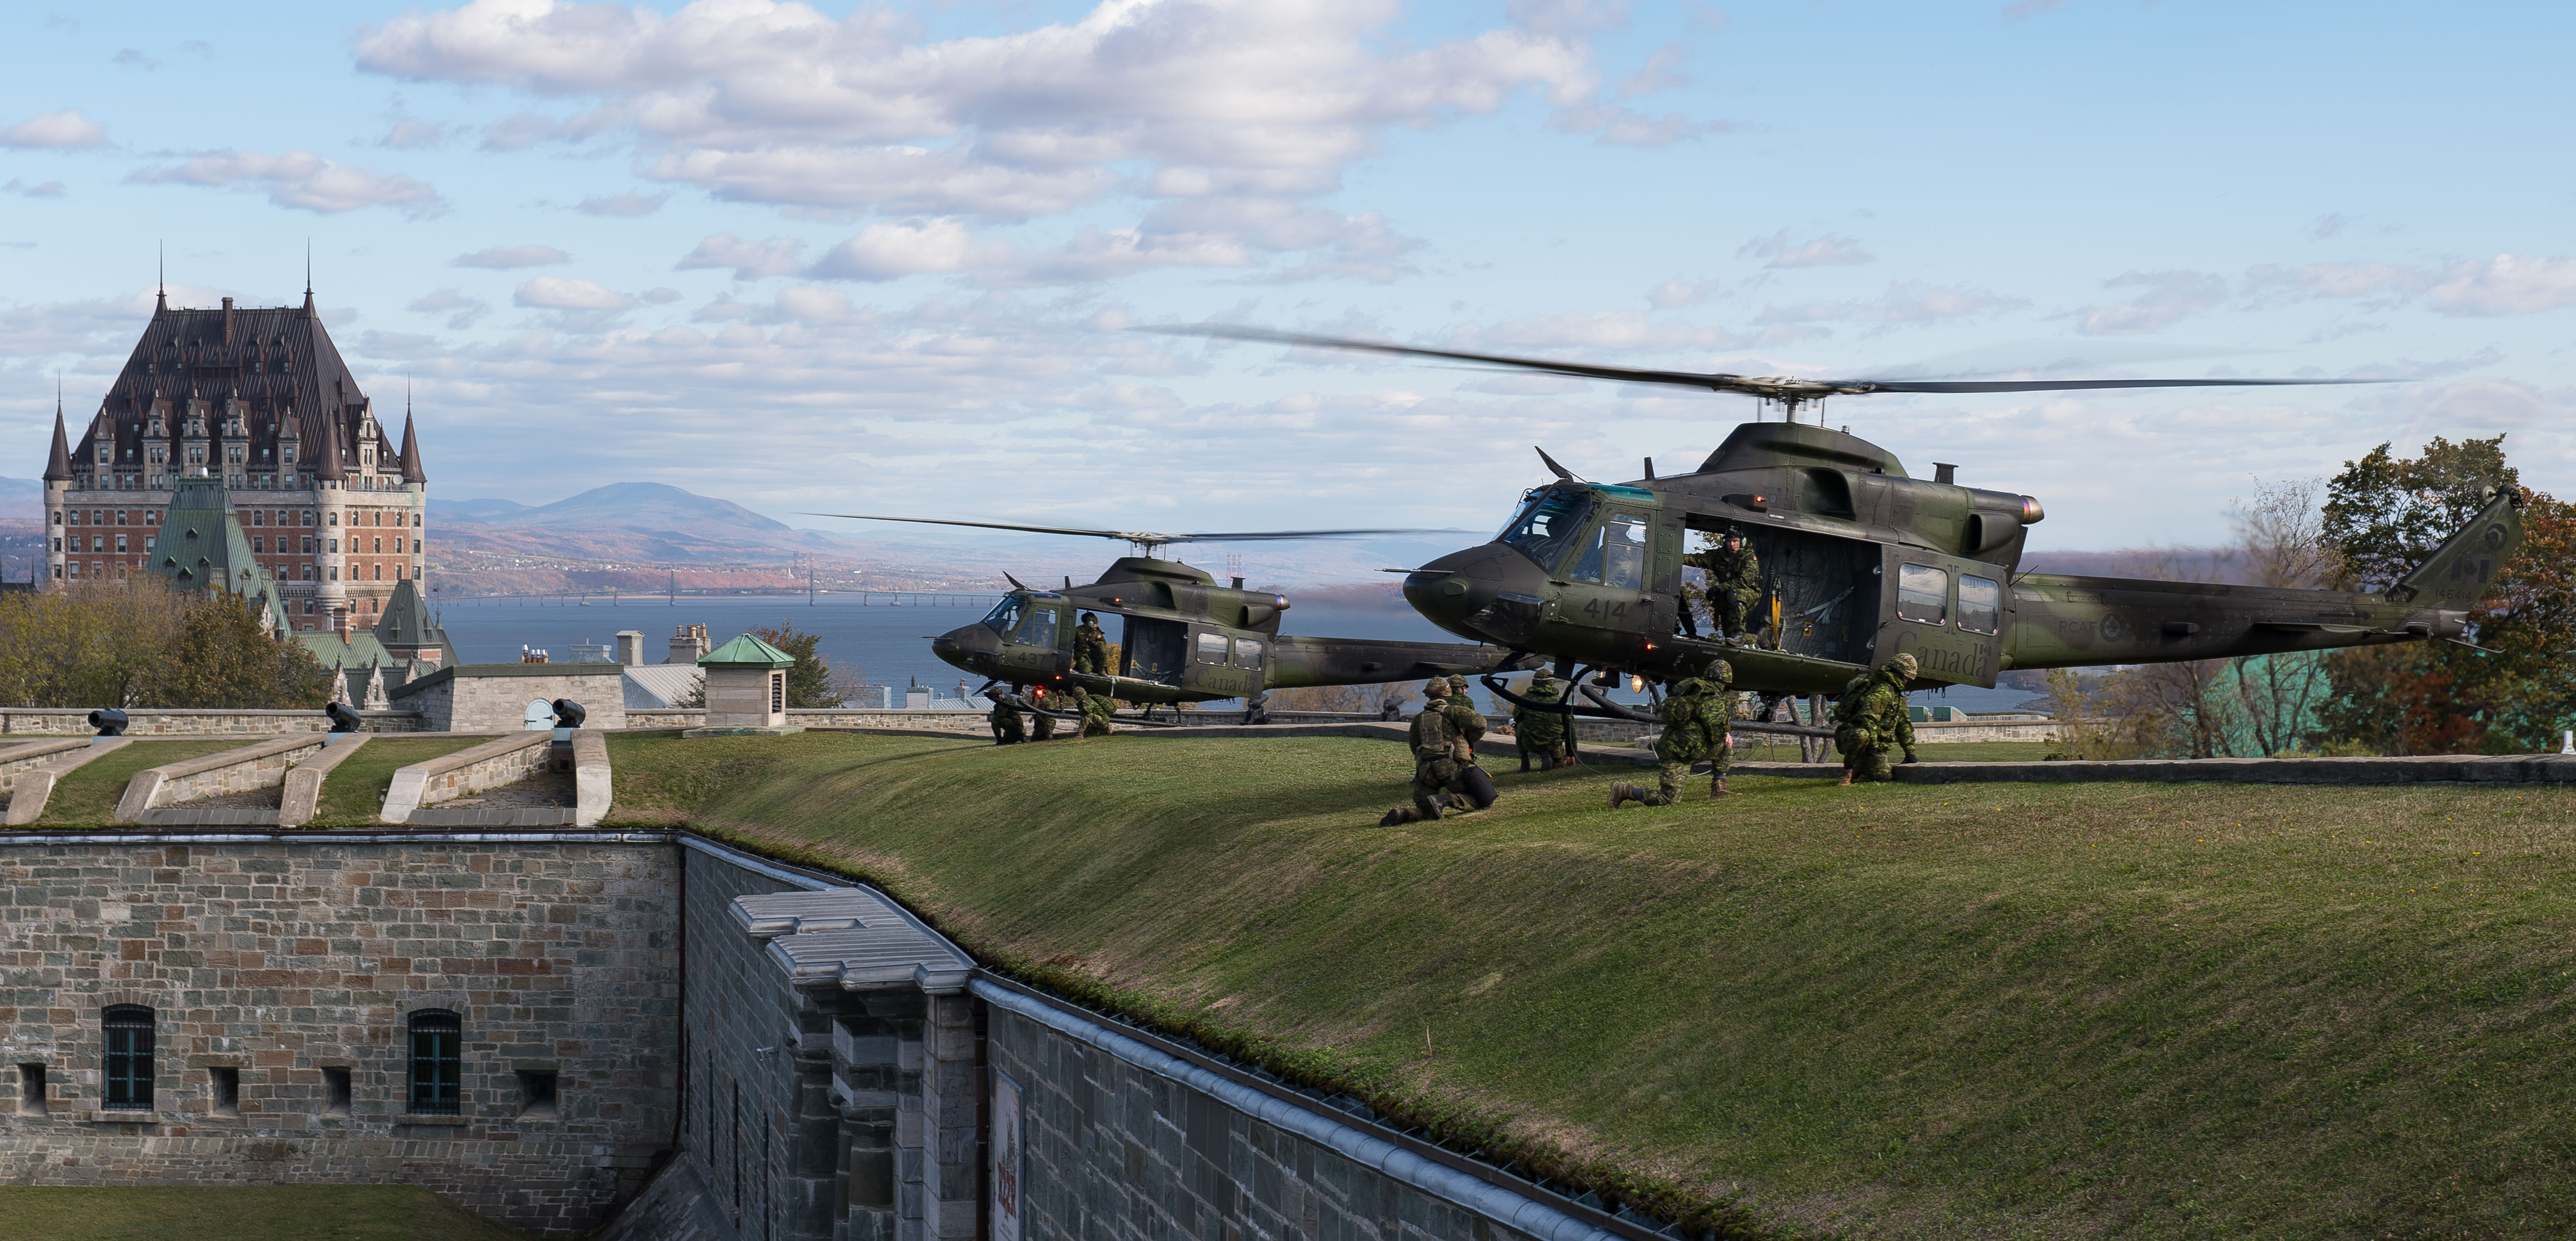 On October 20, 2017, CH-146 Griffon helicopters from 430 Tactical Helicopter Squadron, based in Valcartier, Québec, sit at the Quebec Citadelle during Exercise Spartiate Eclaireur. PHOTO: Sergeant Marc-André Gaudreault, VL08-2017-0017-011